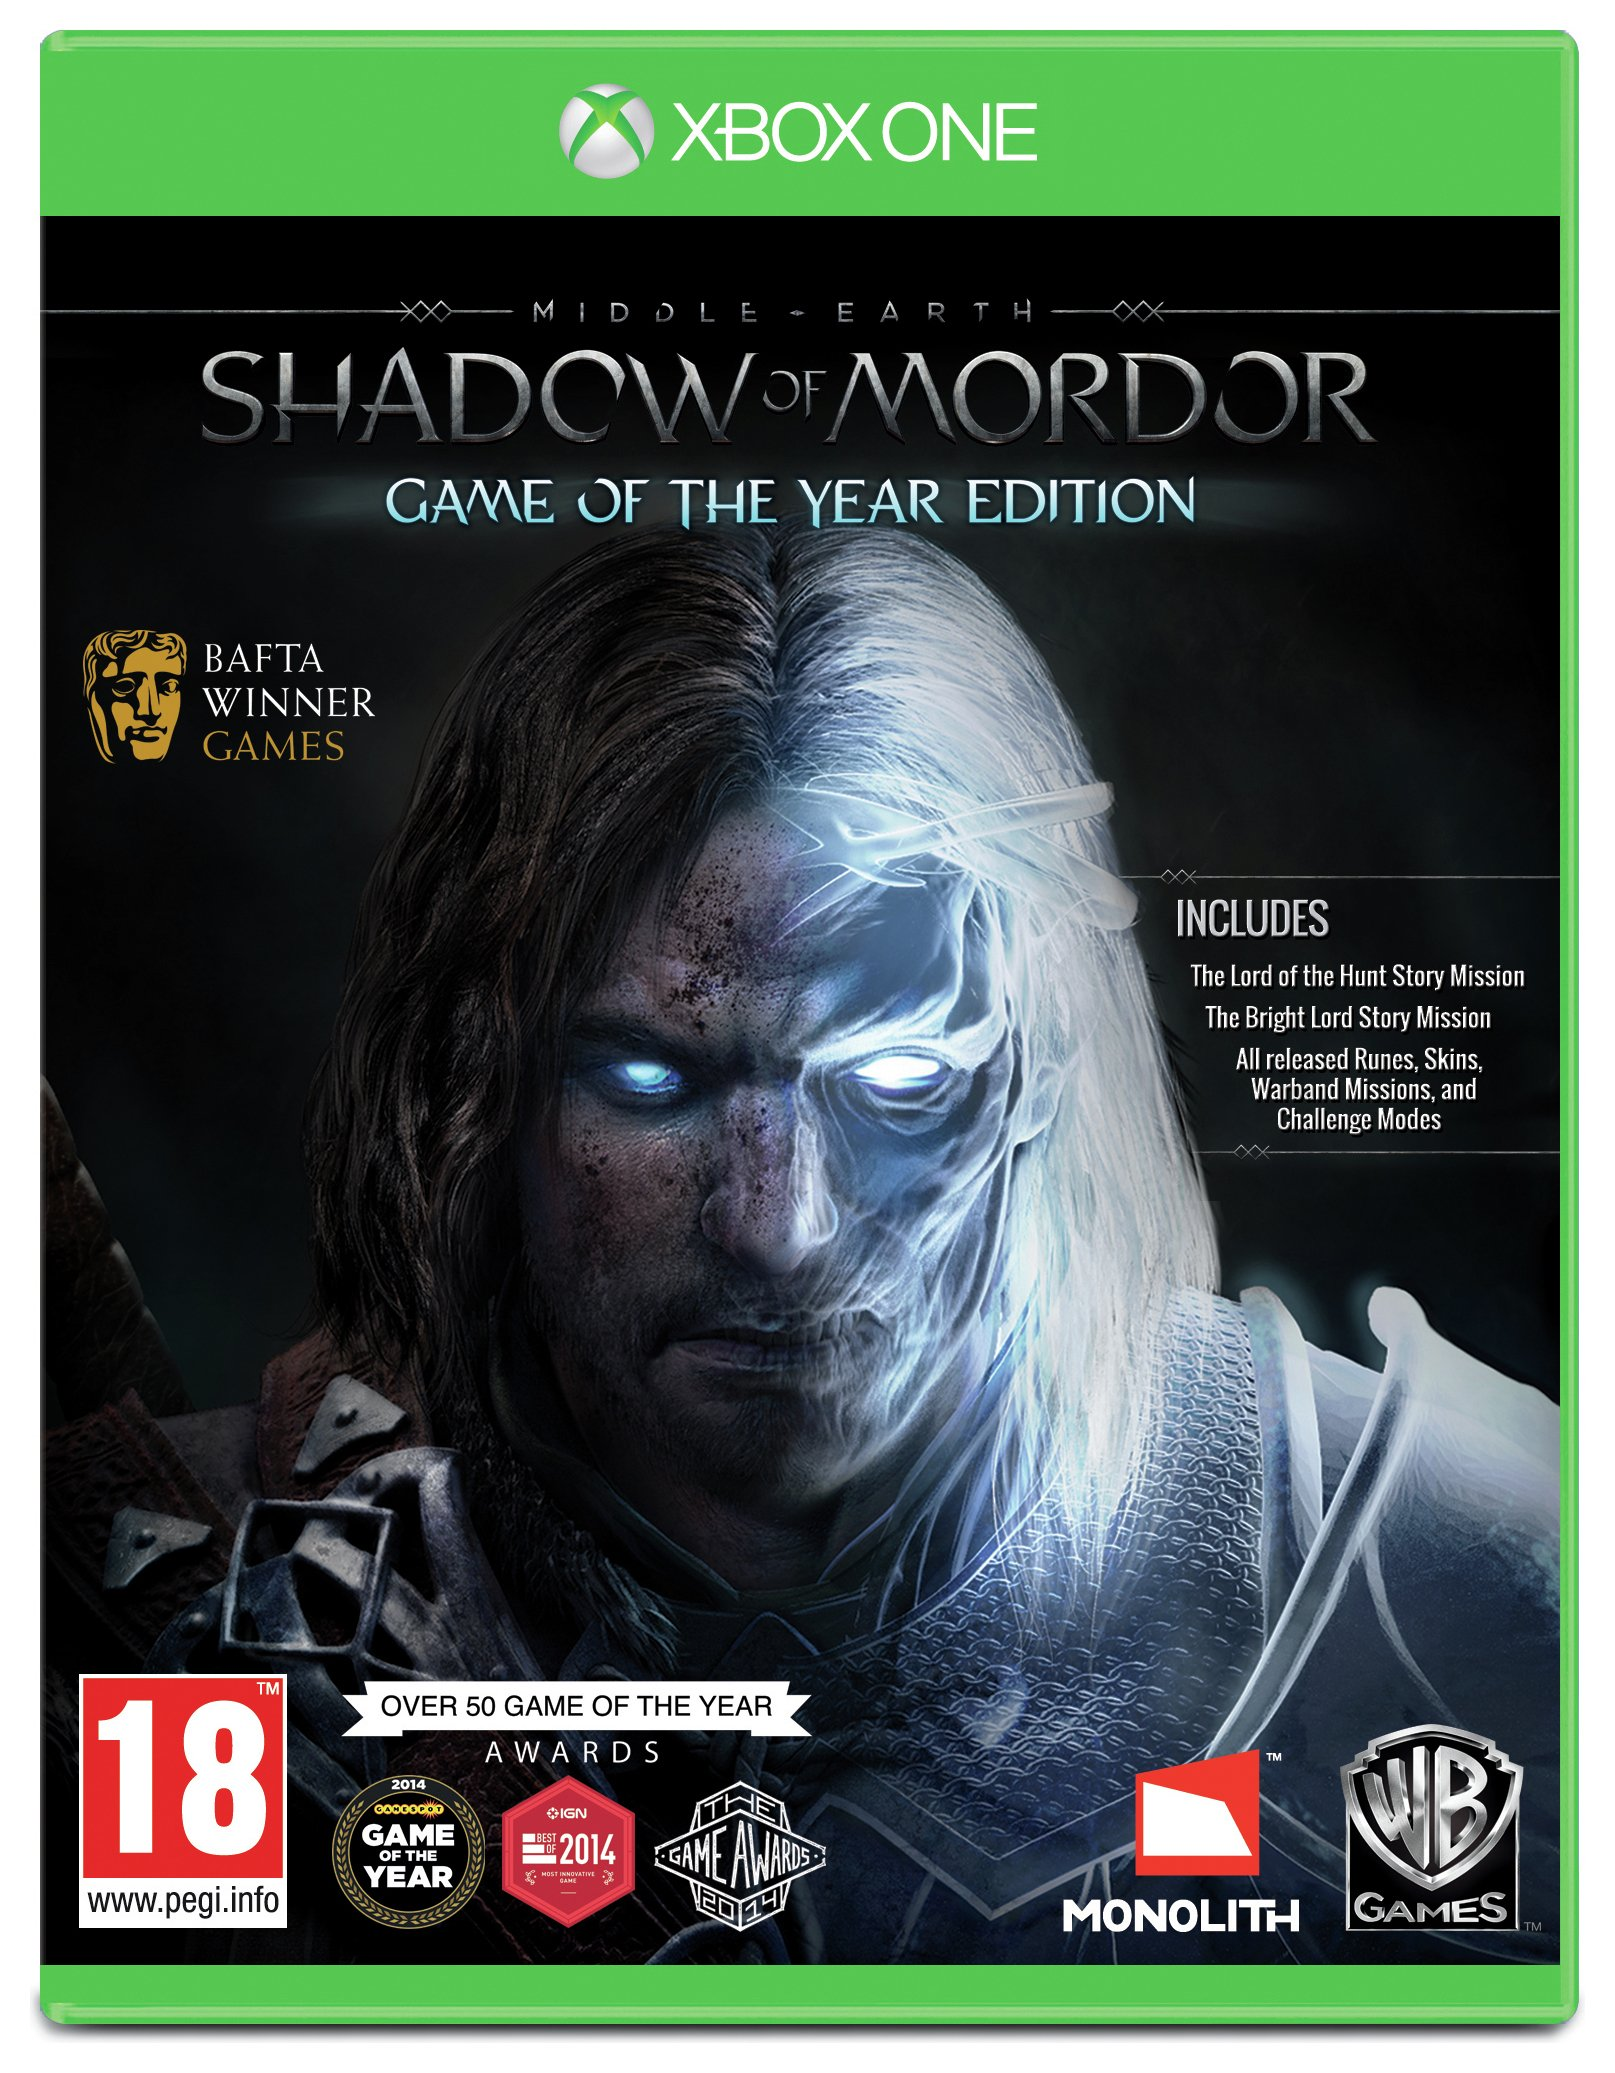 Image of Shadow of Mordor Game of the Year Edition - Xbox - One Game.